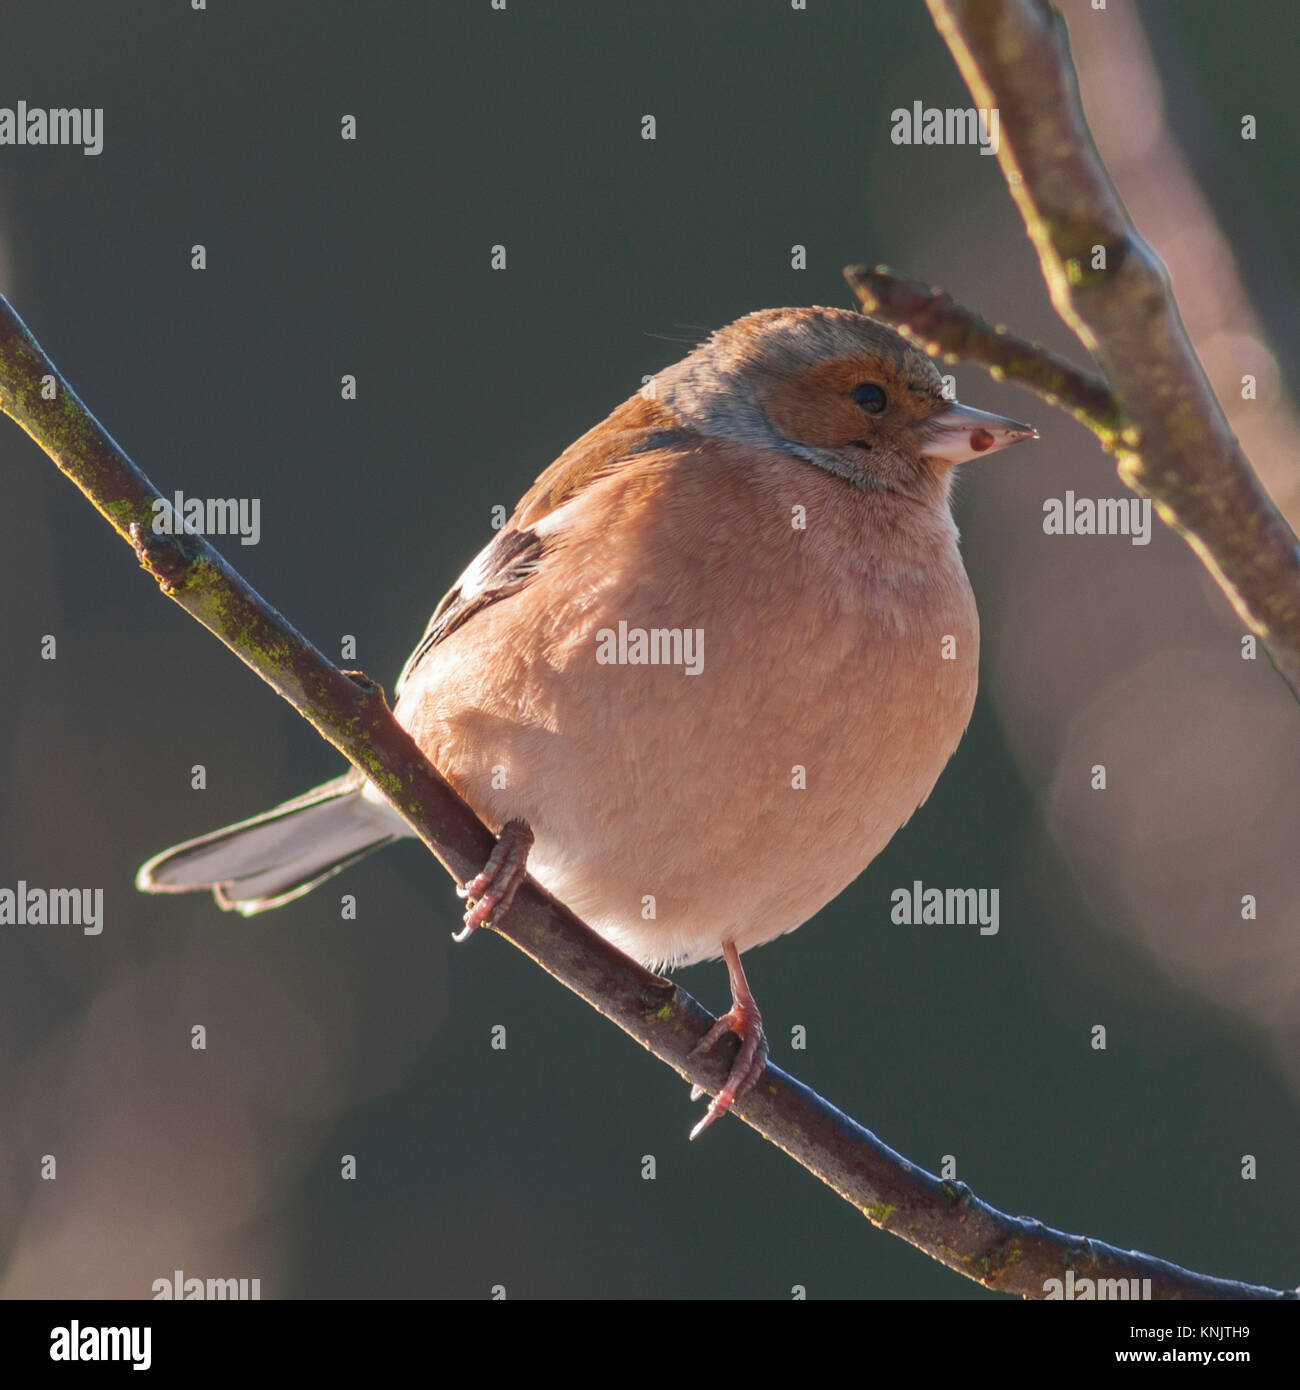 Norfolk, England, UK. 12th Dec, 2017. A Male Chaffinch (Fringilla coelebs) feeding in freezing conditions in a Norfolk - Stock Image